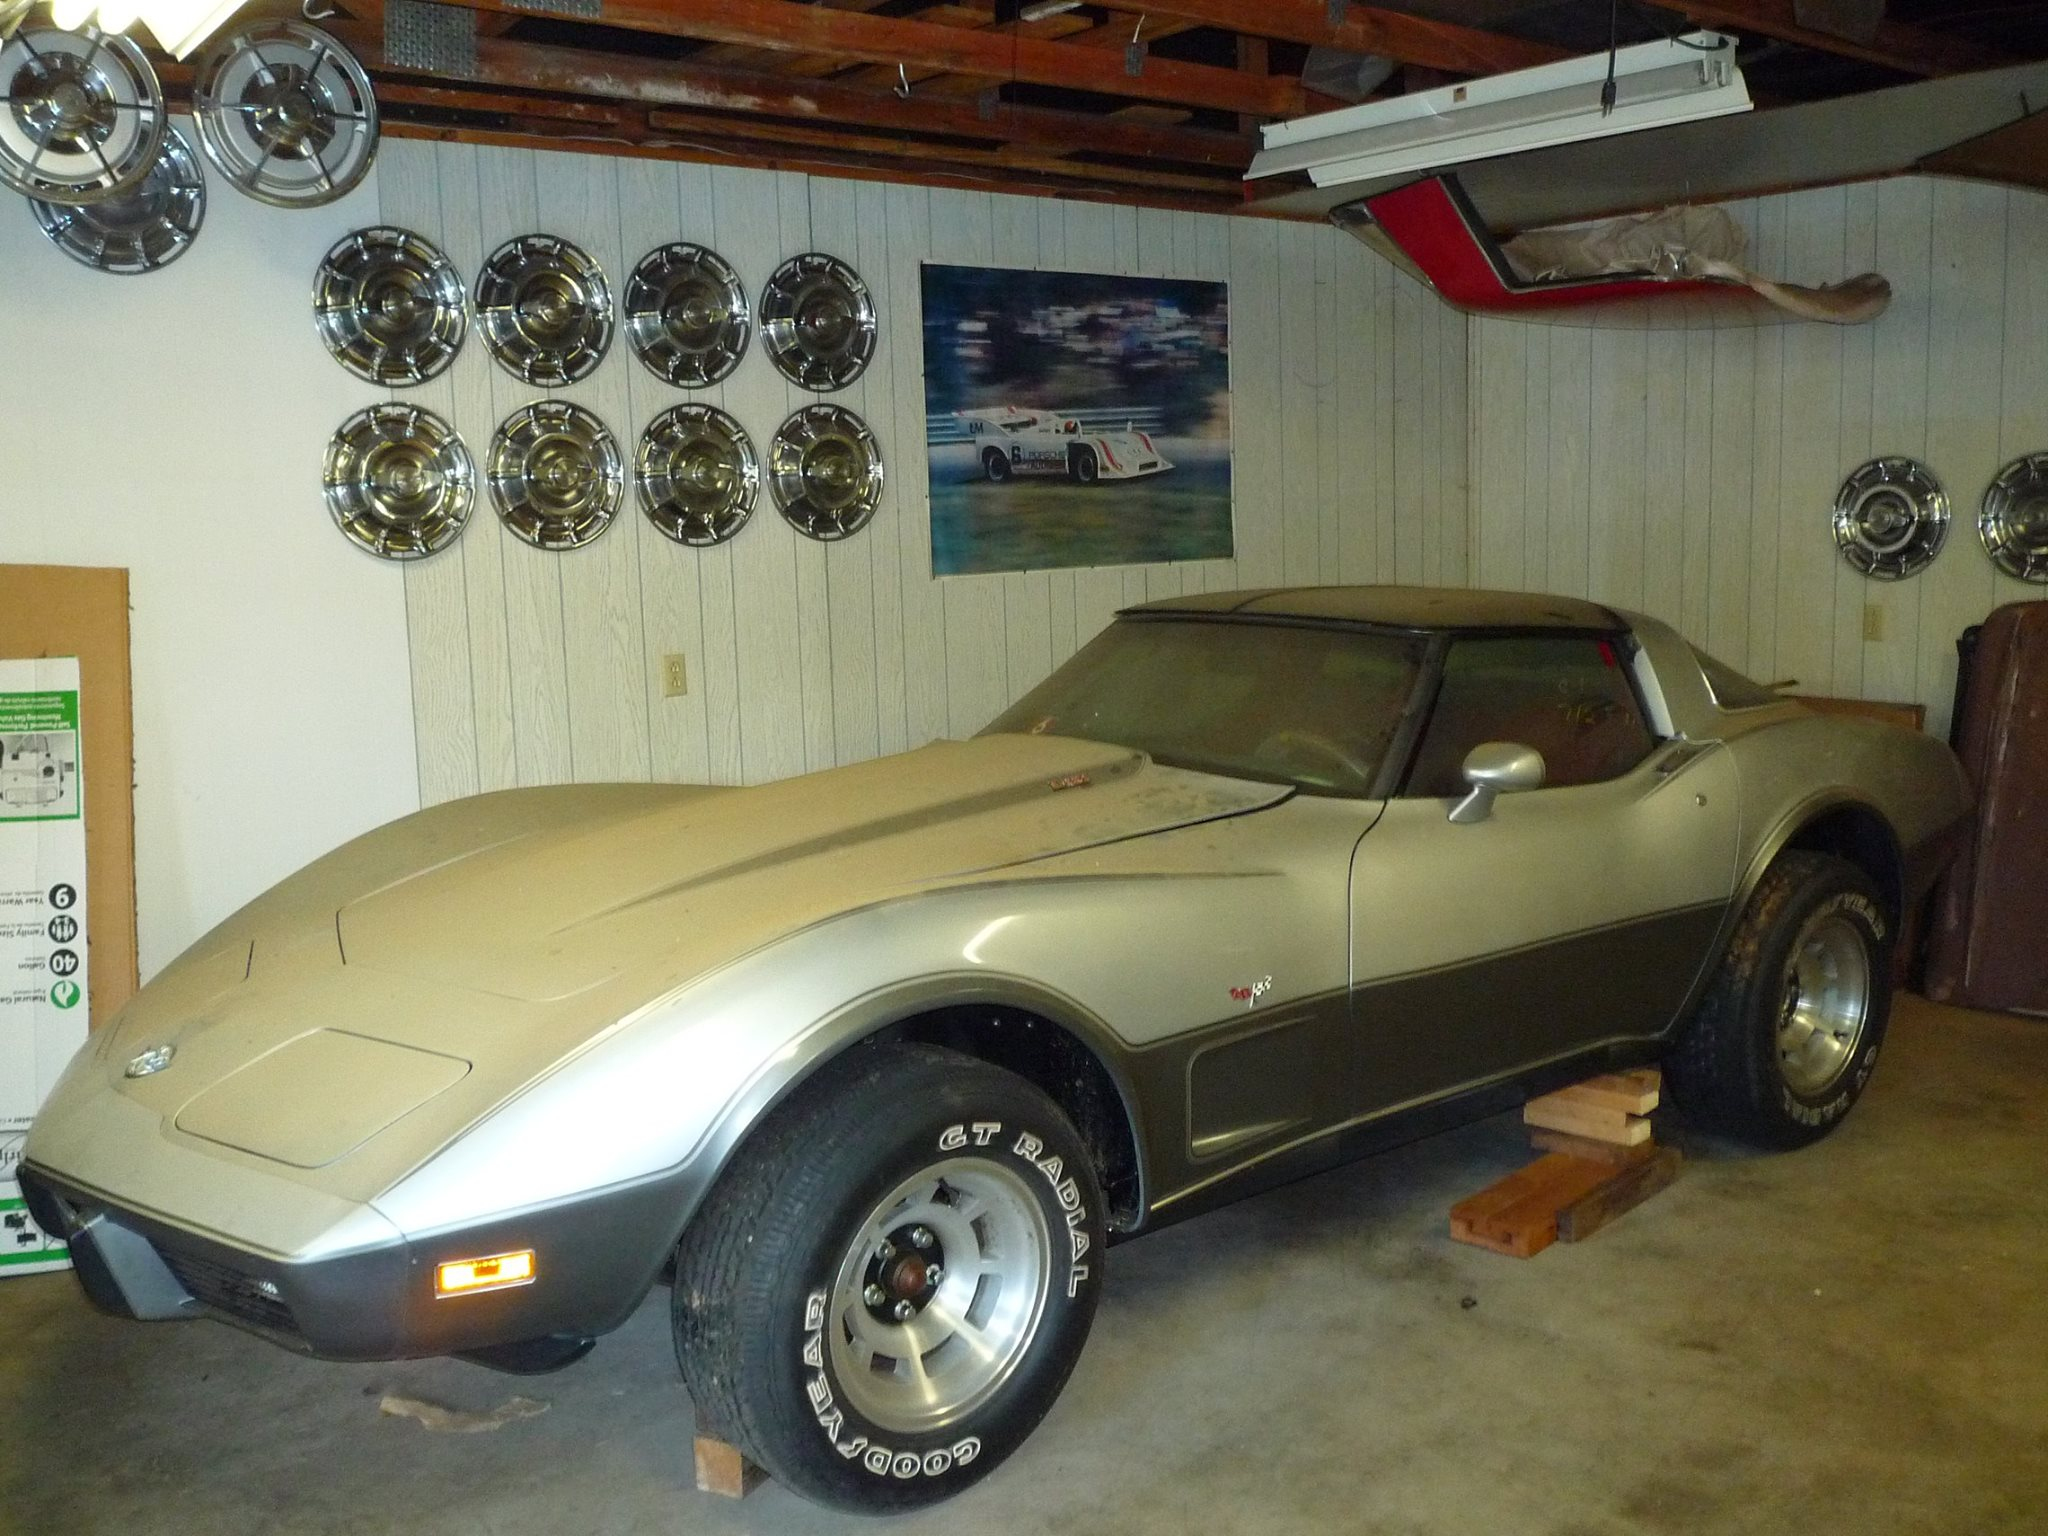 BARN FIND This 1978 Silver Anniversary Corvette Has 4 1 Miles